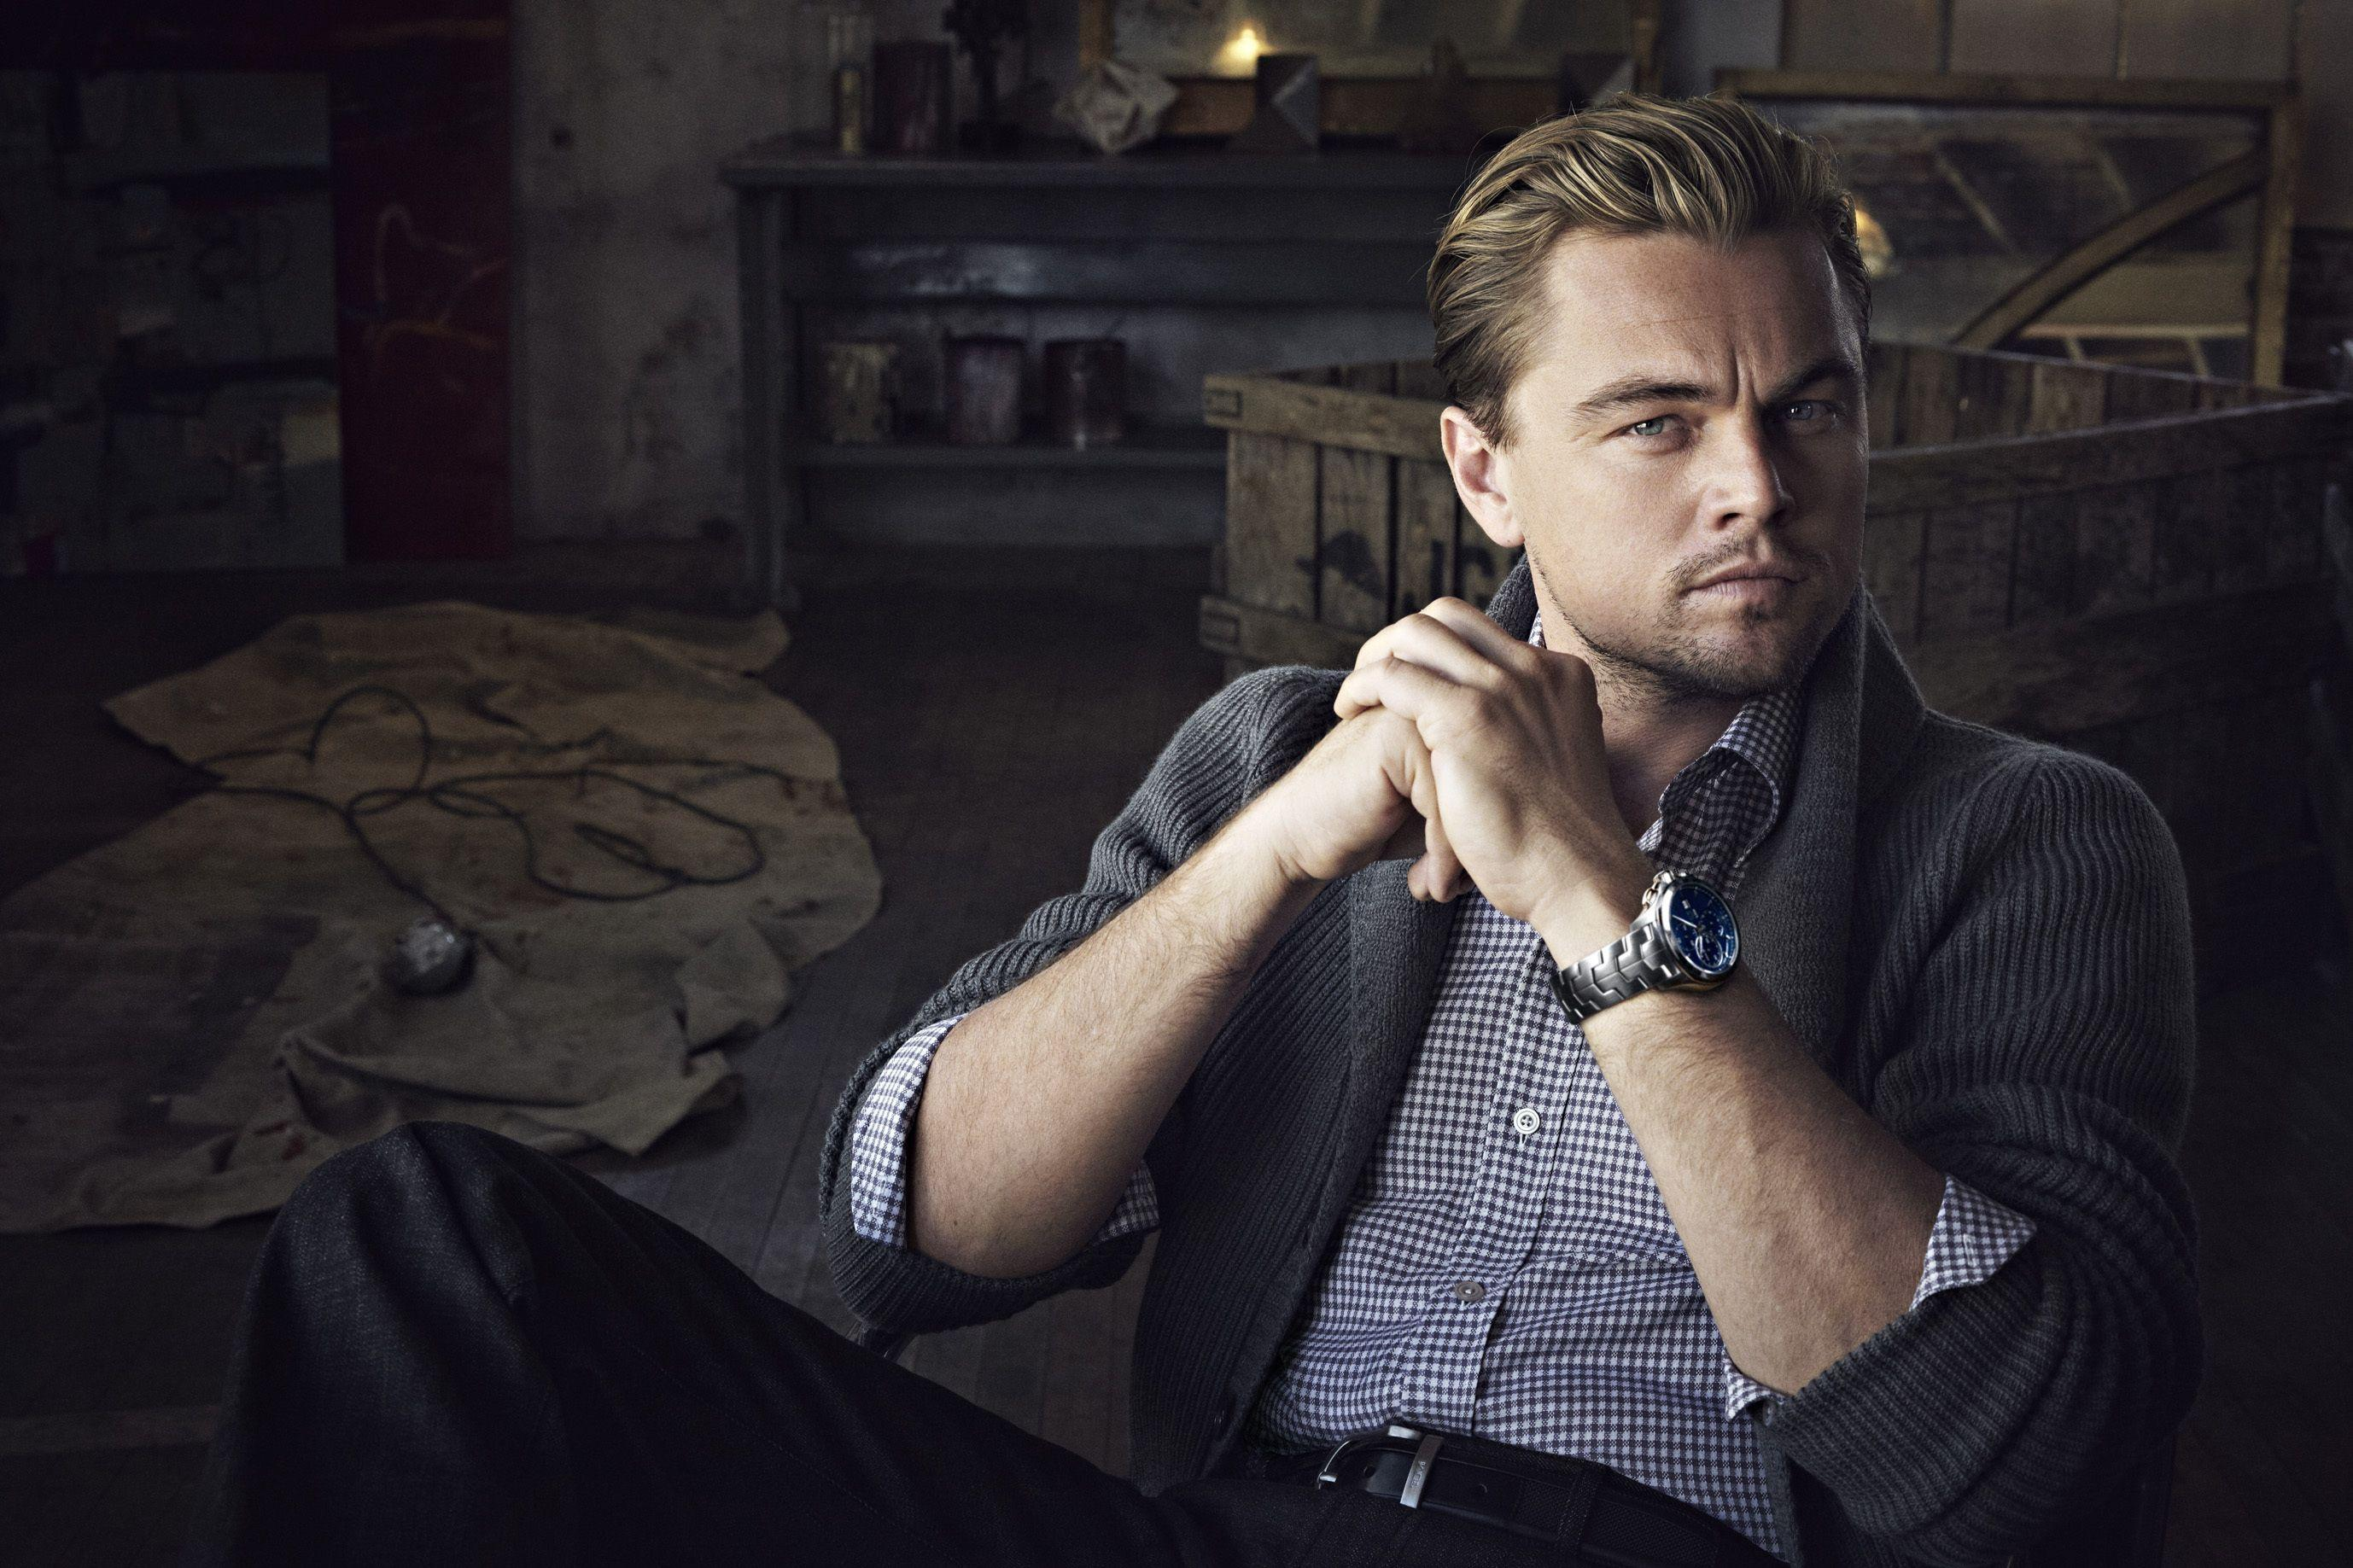 leonardo dicaprio wallpapers - wallpaper cave